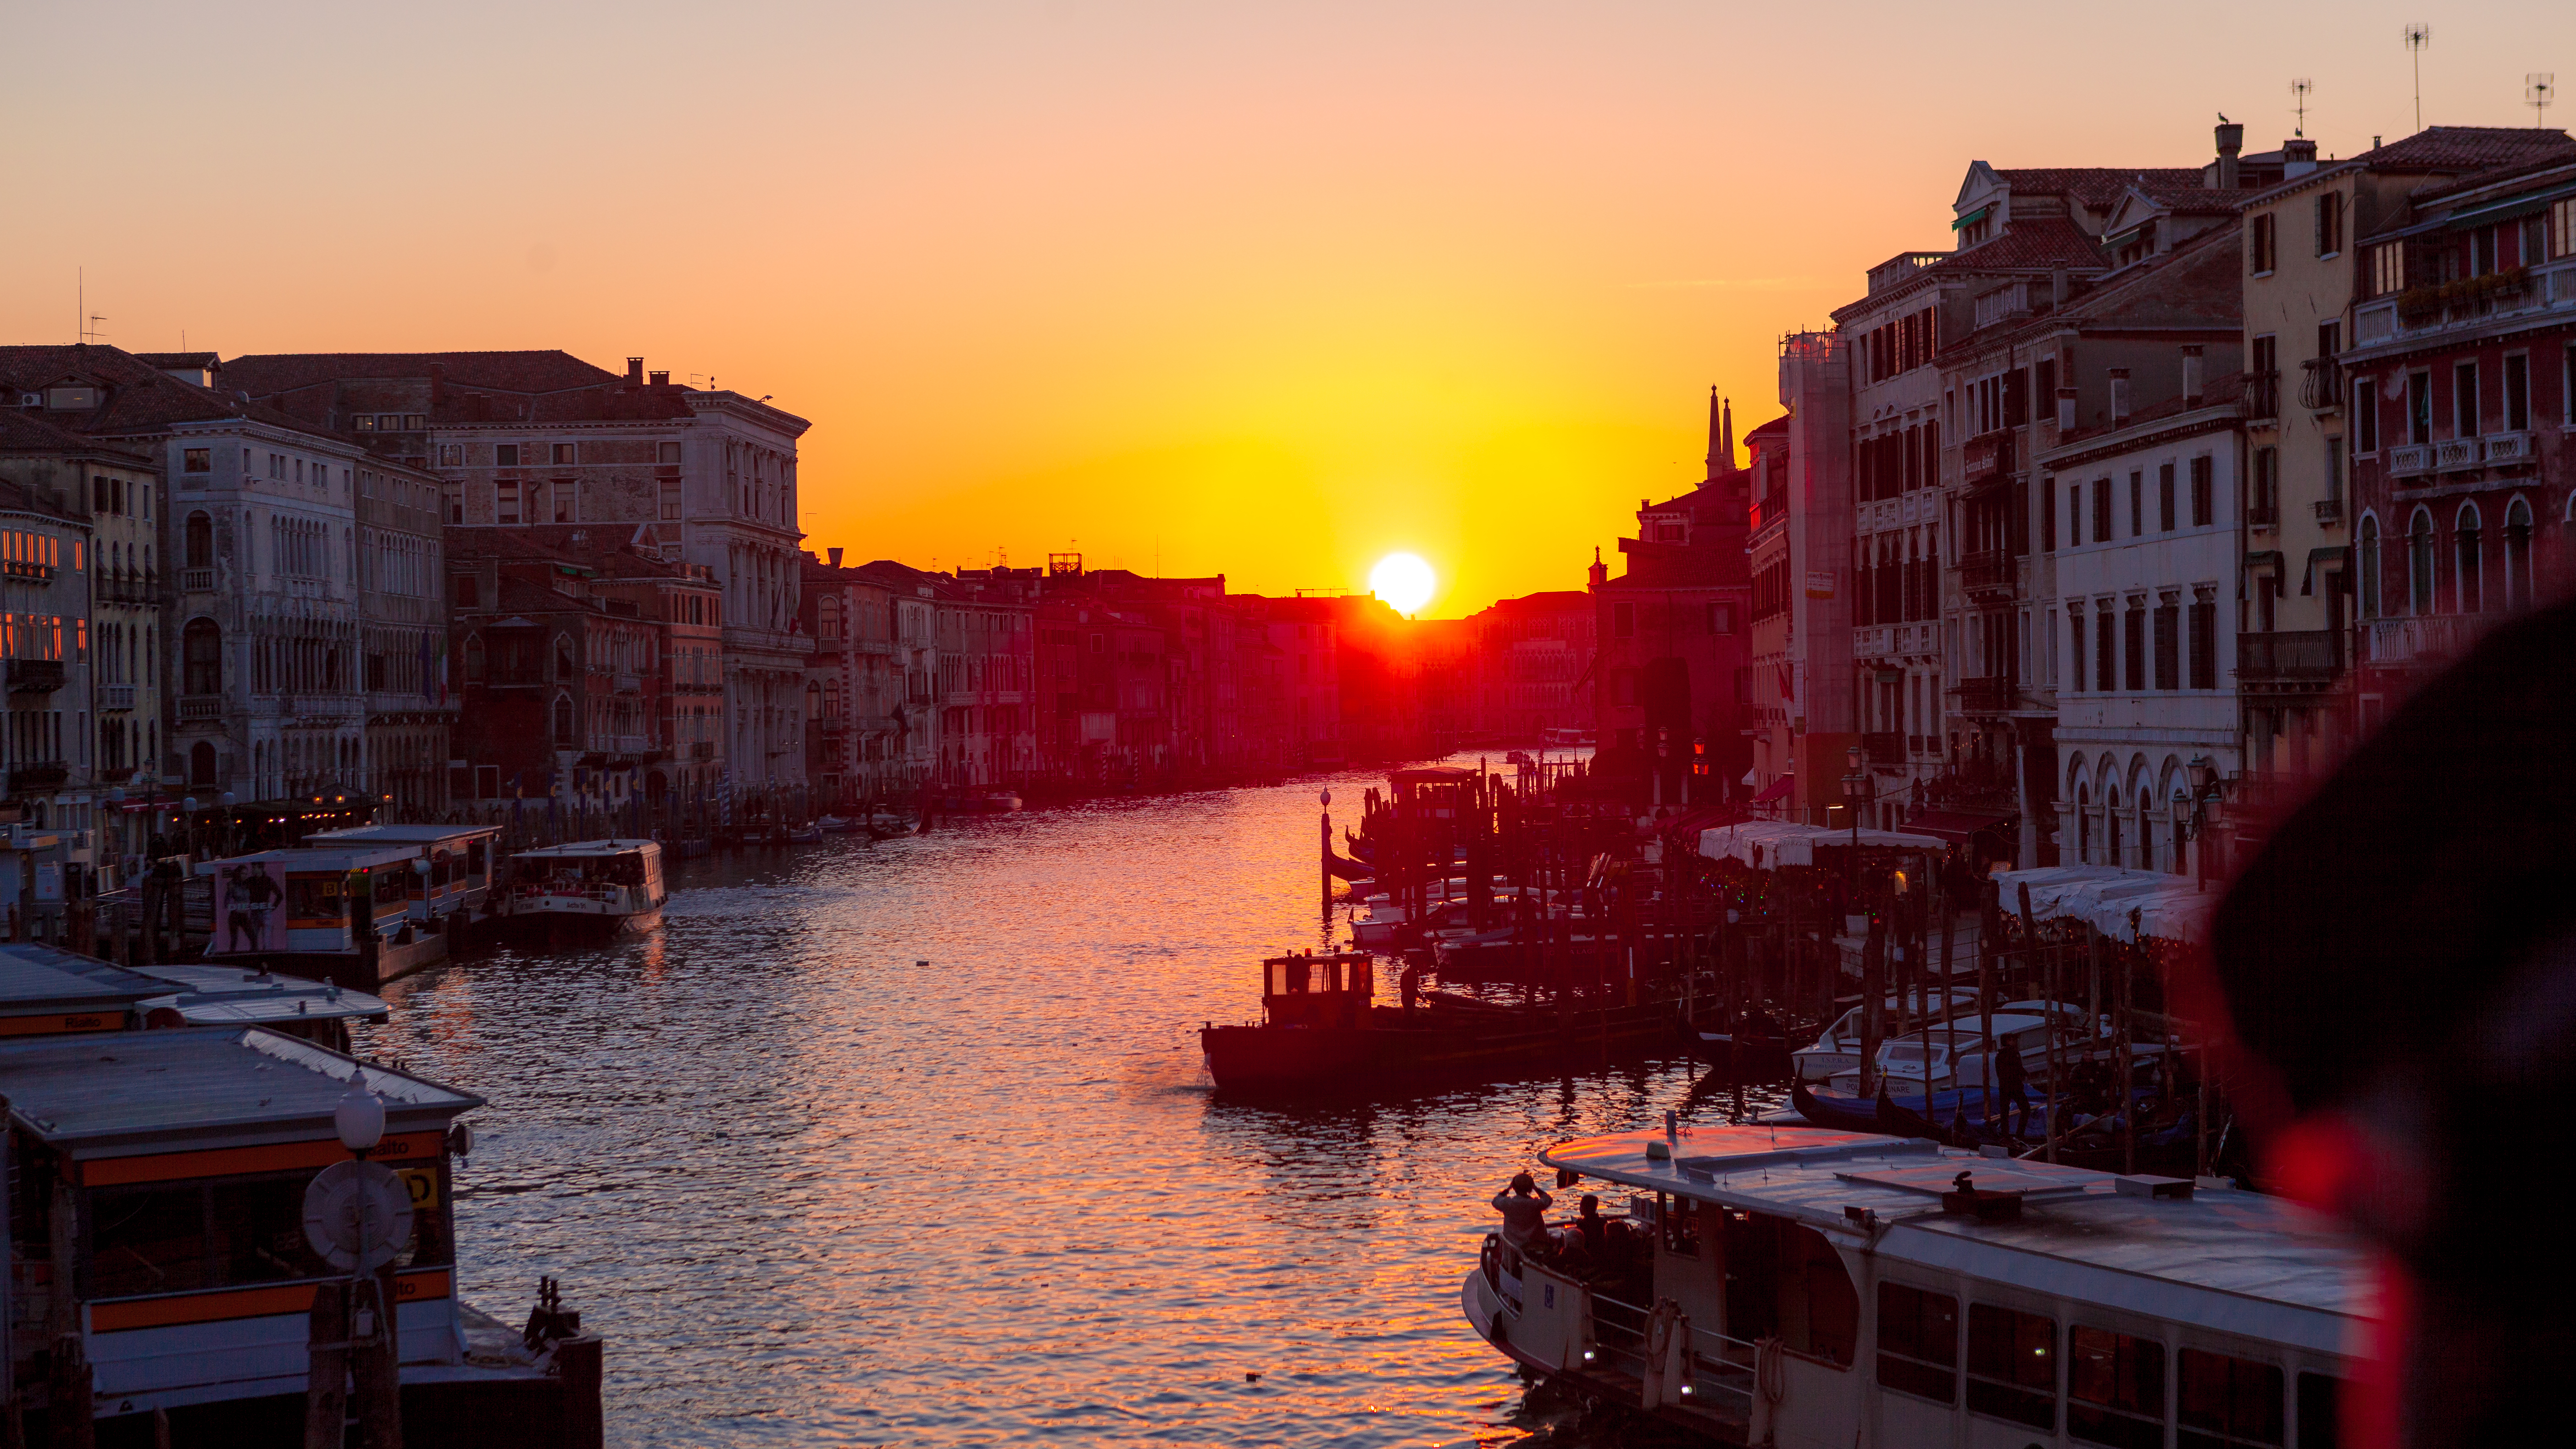 Sunset over the grand canal - Venice